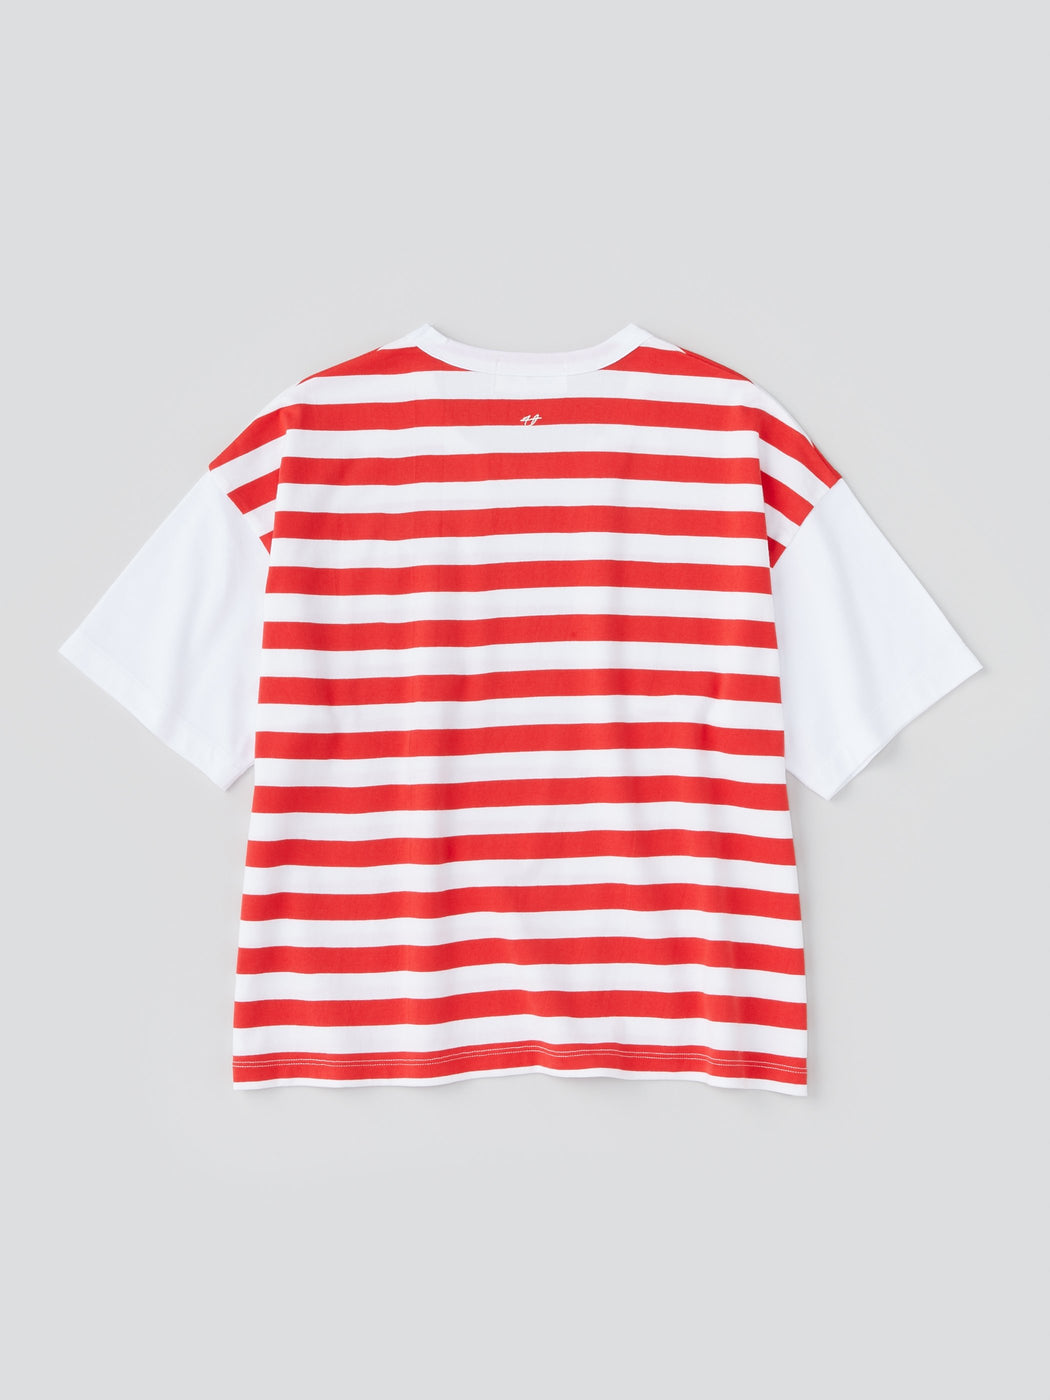 Dots & Stripes Women's Short Sleeve Wide T-shirt